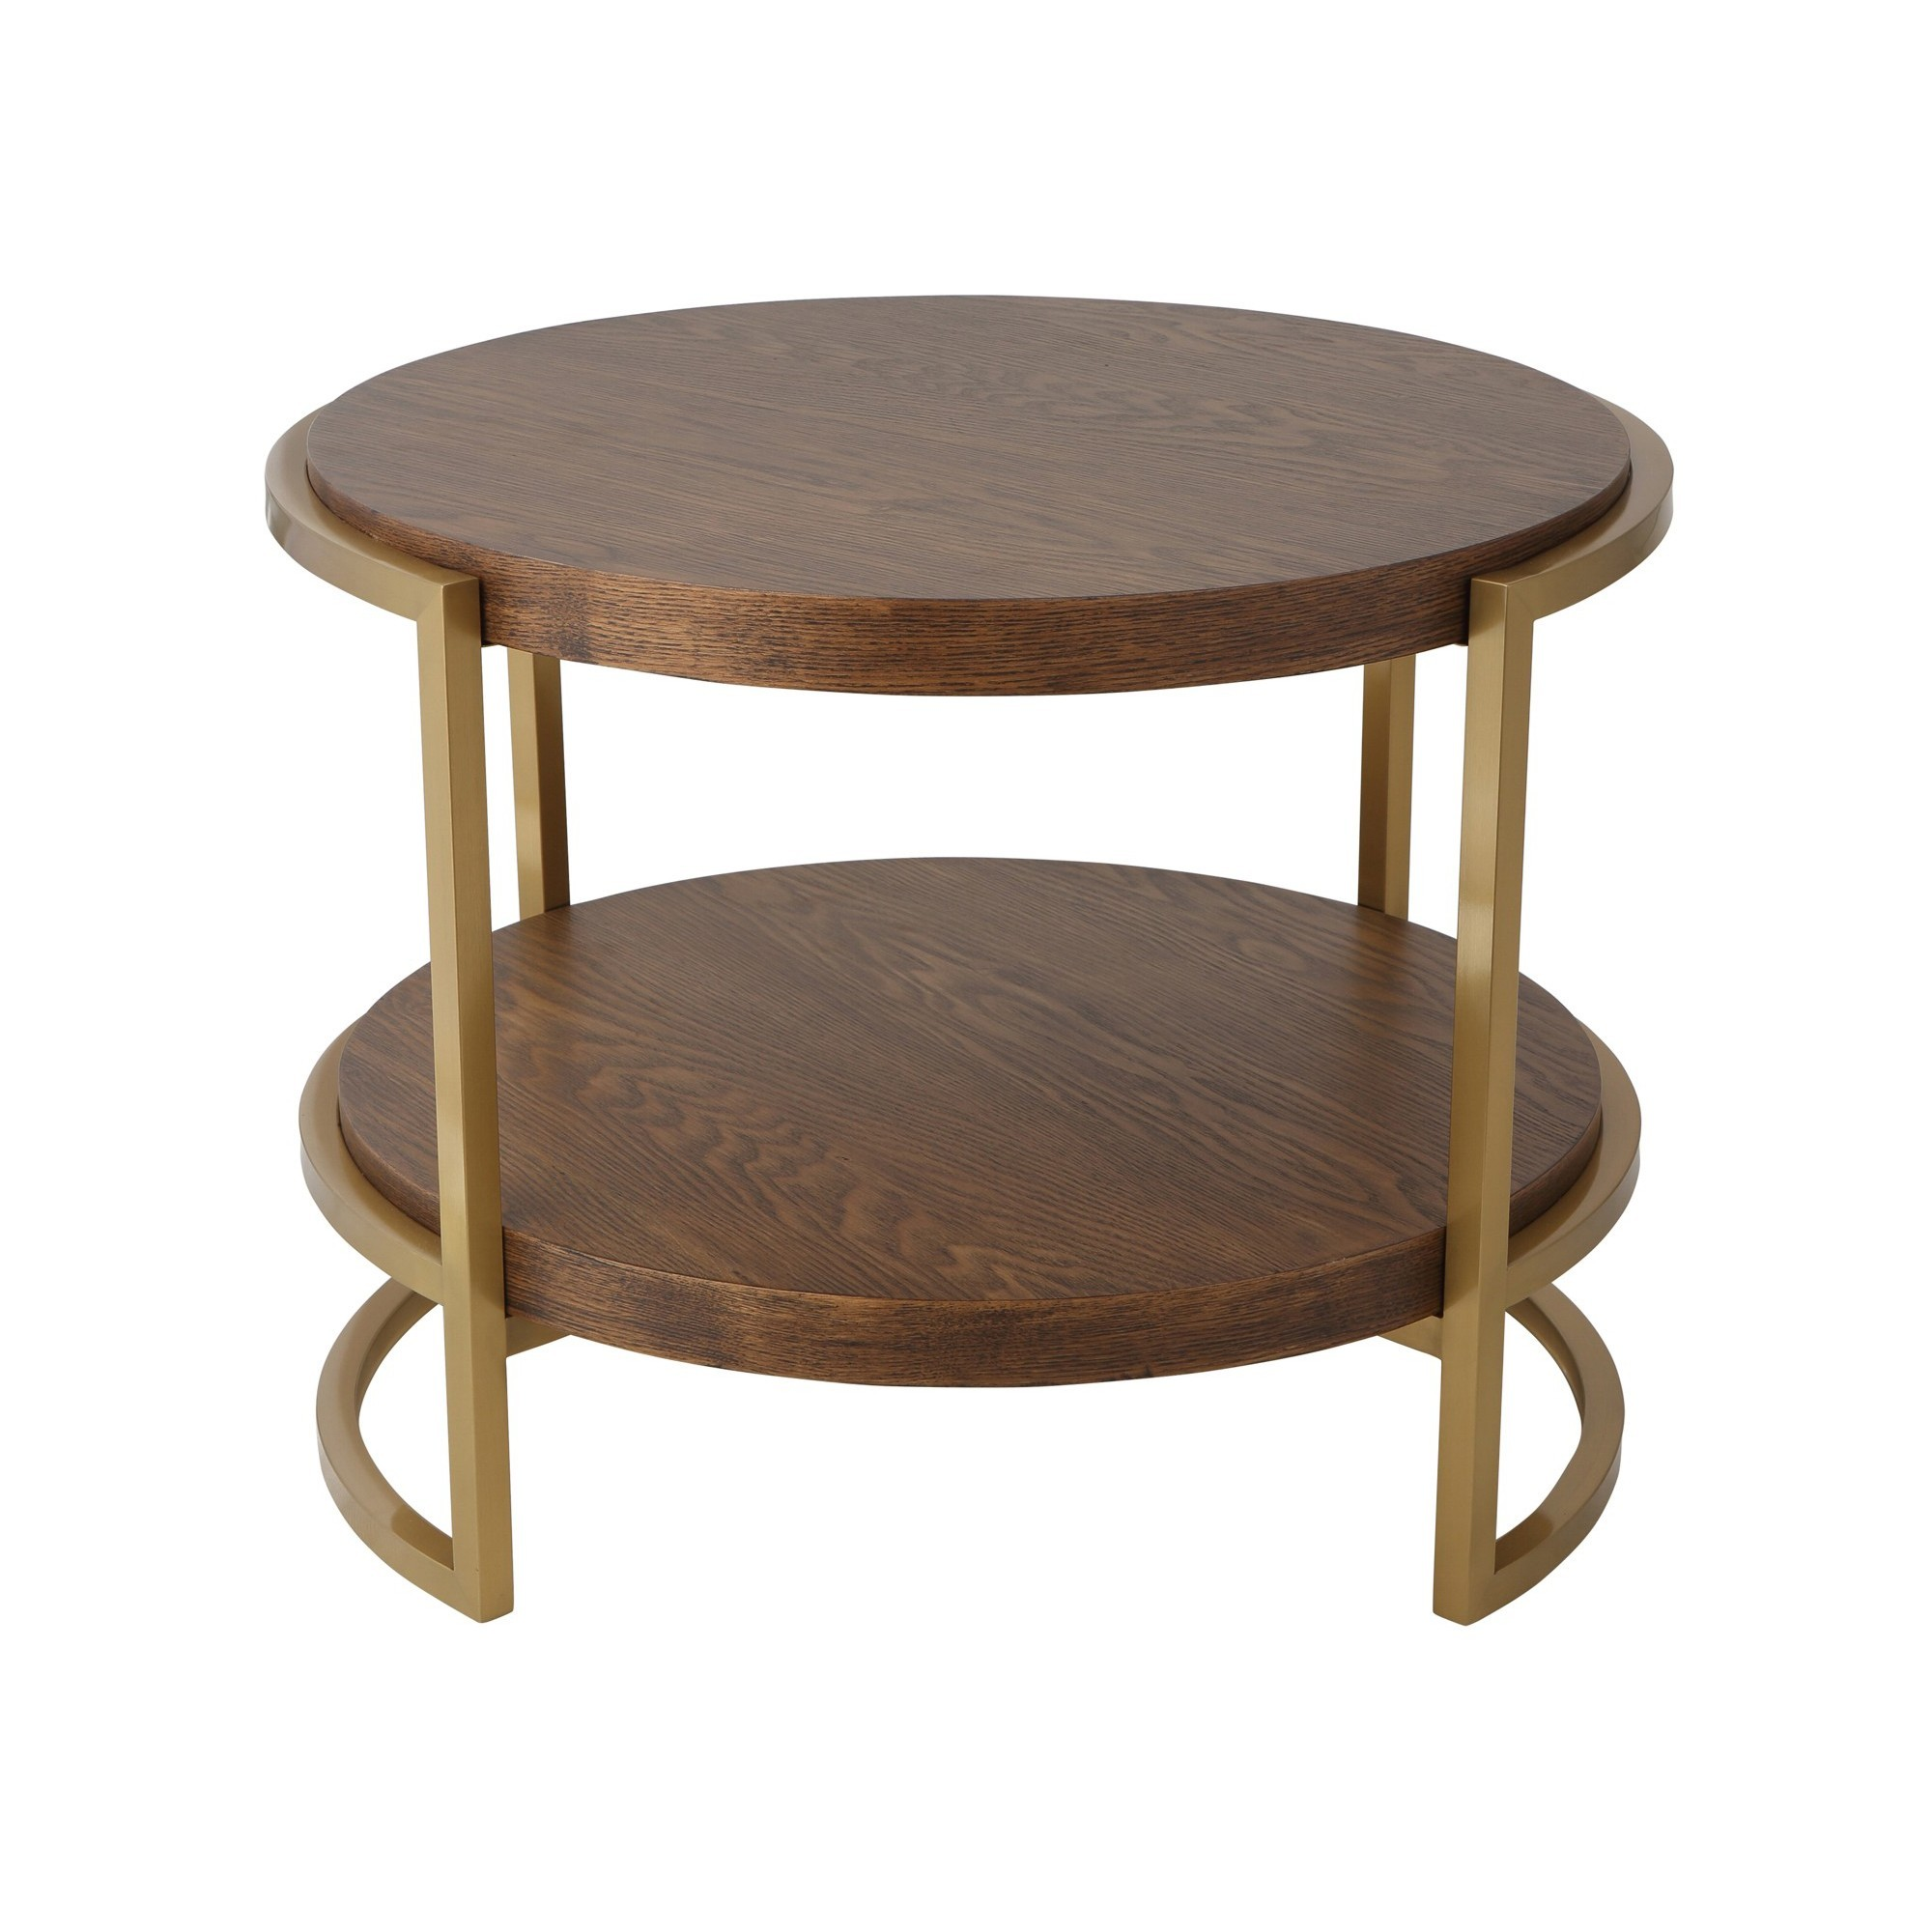 Mylie Wood & Stainless Steel Round Side Table